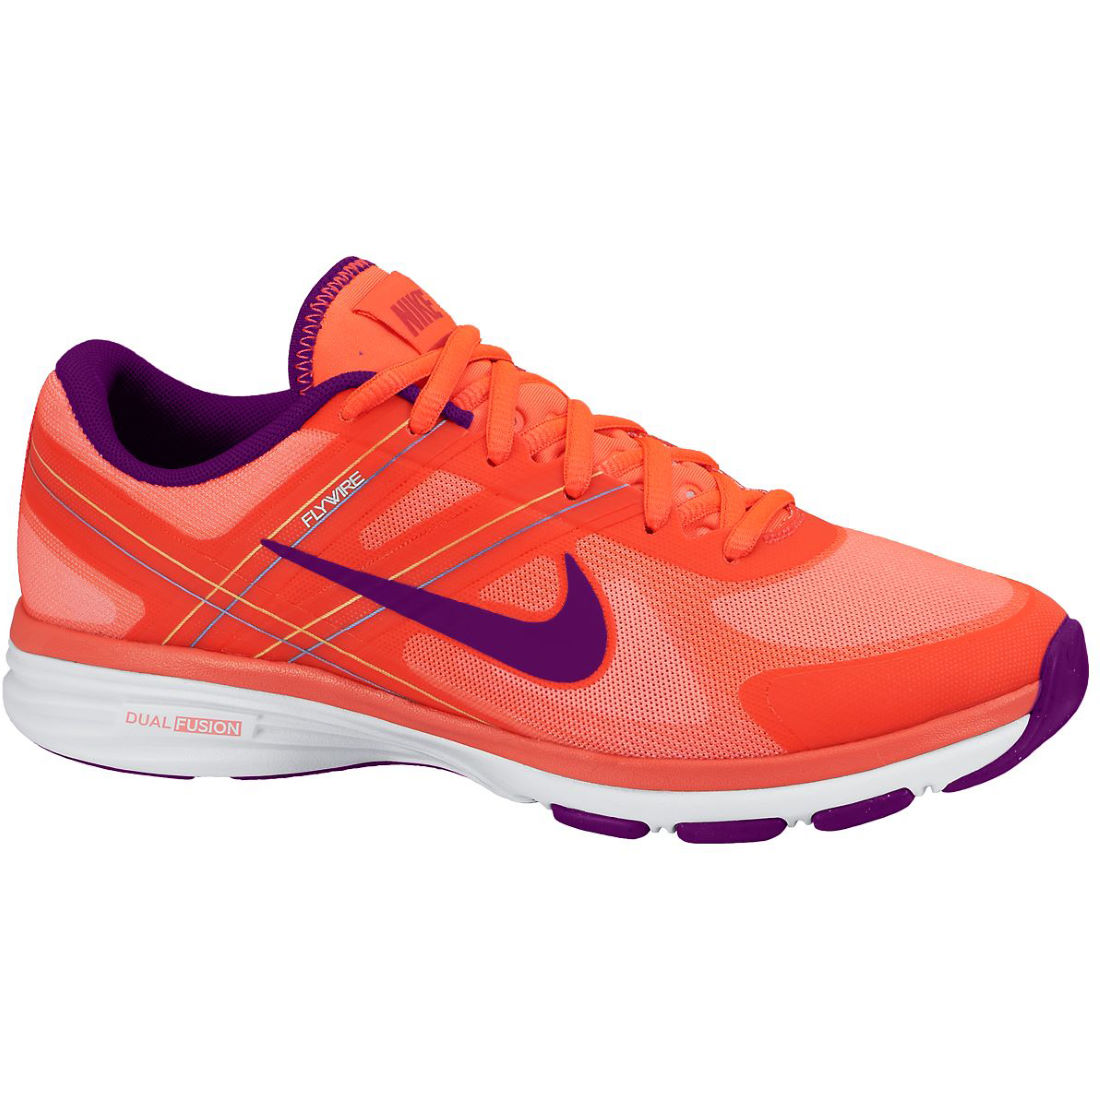 Nike Dual Fusion Womens Running Shoes Review